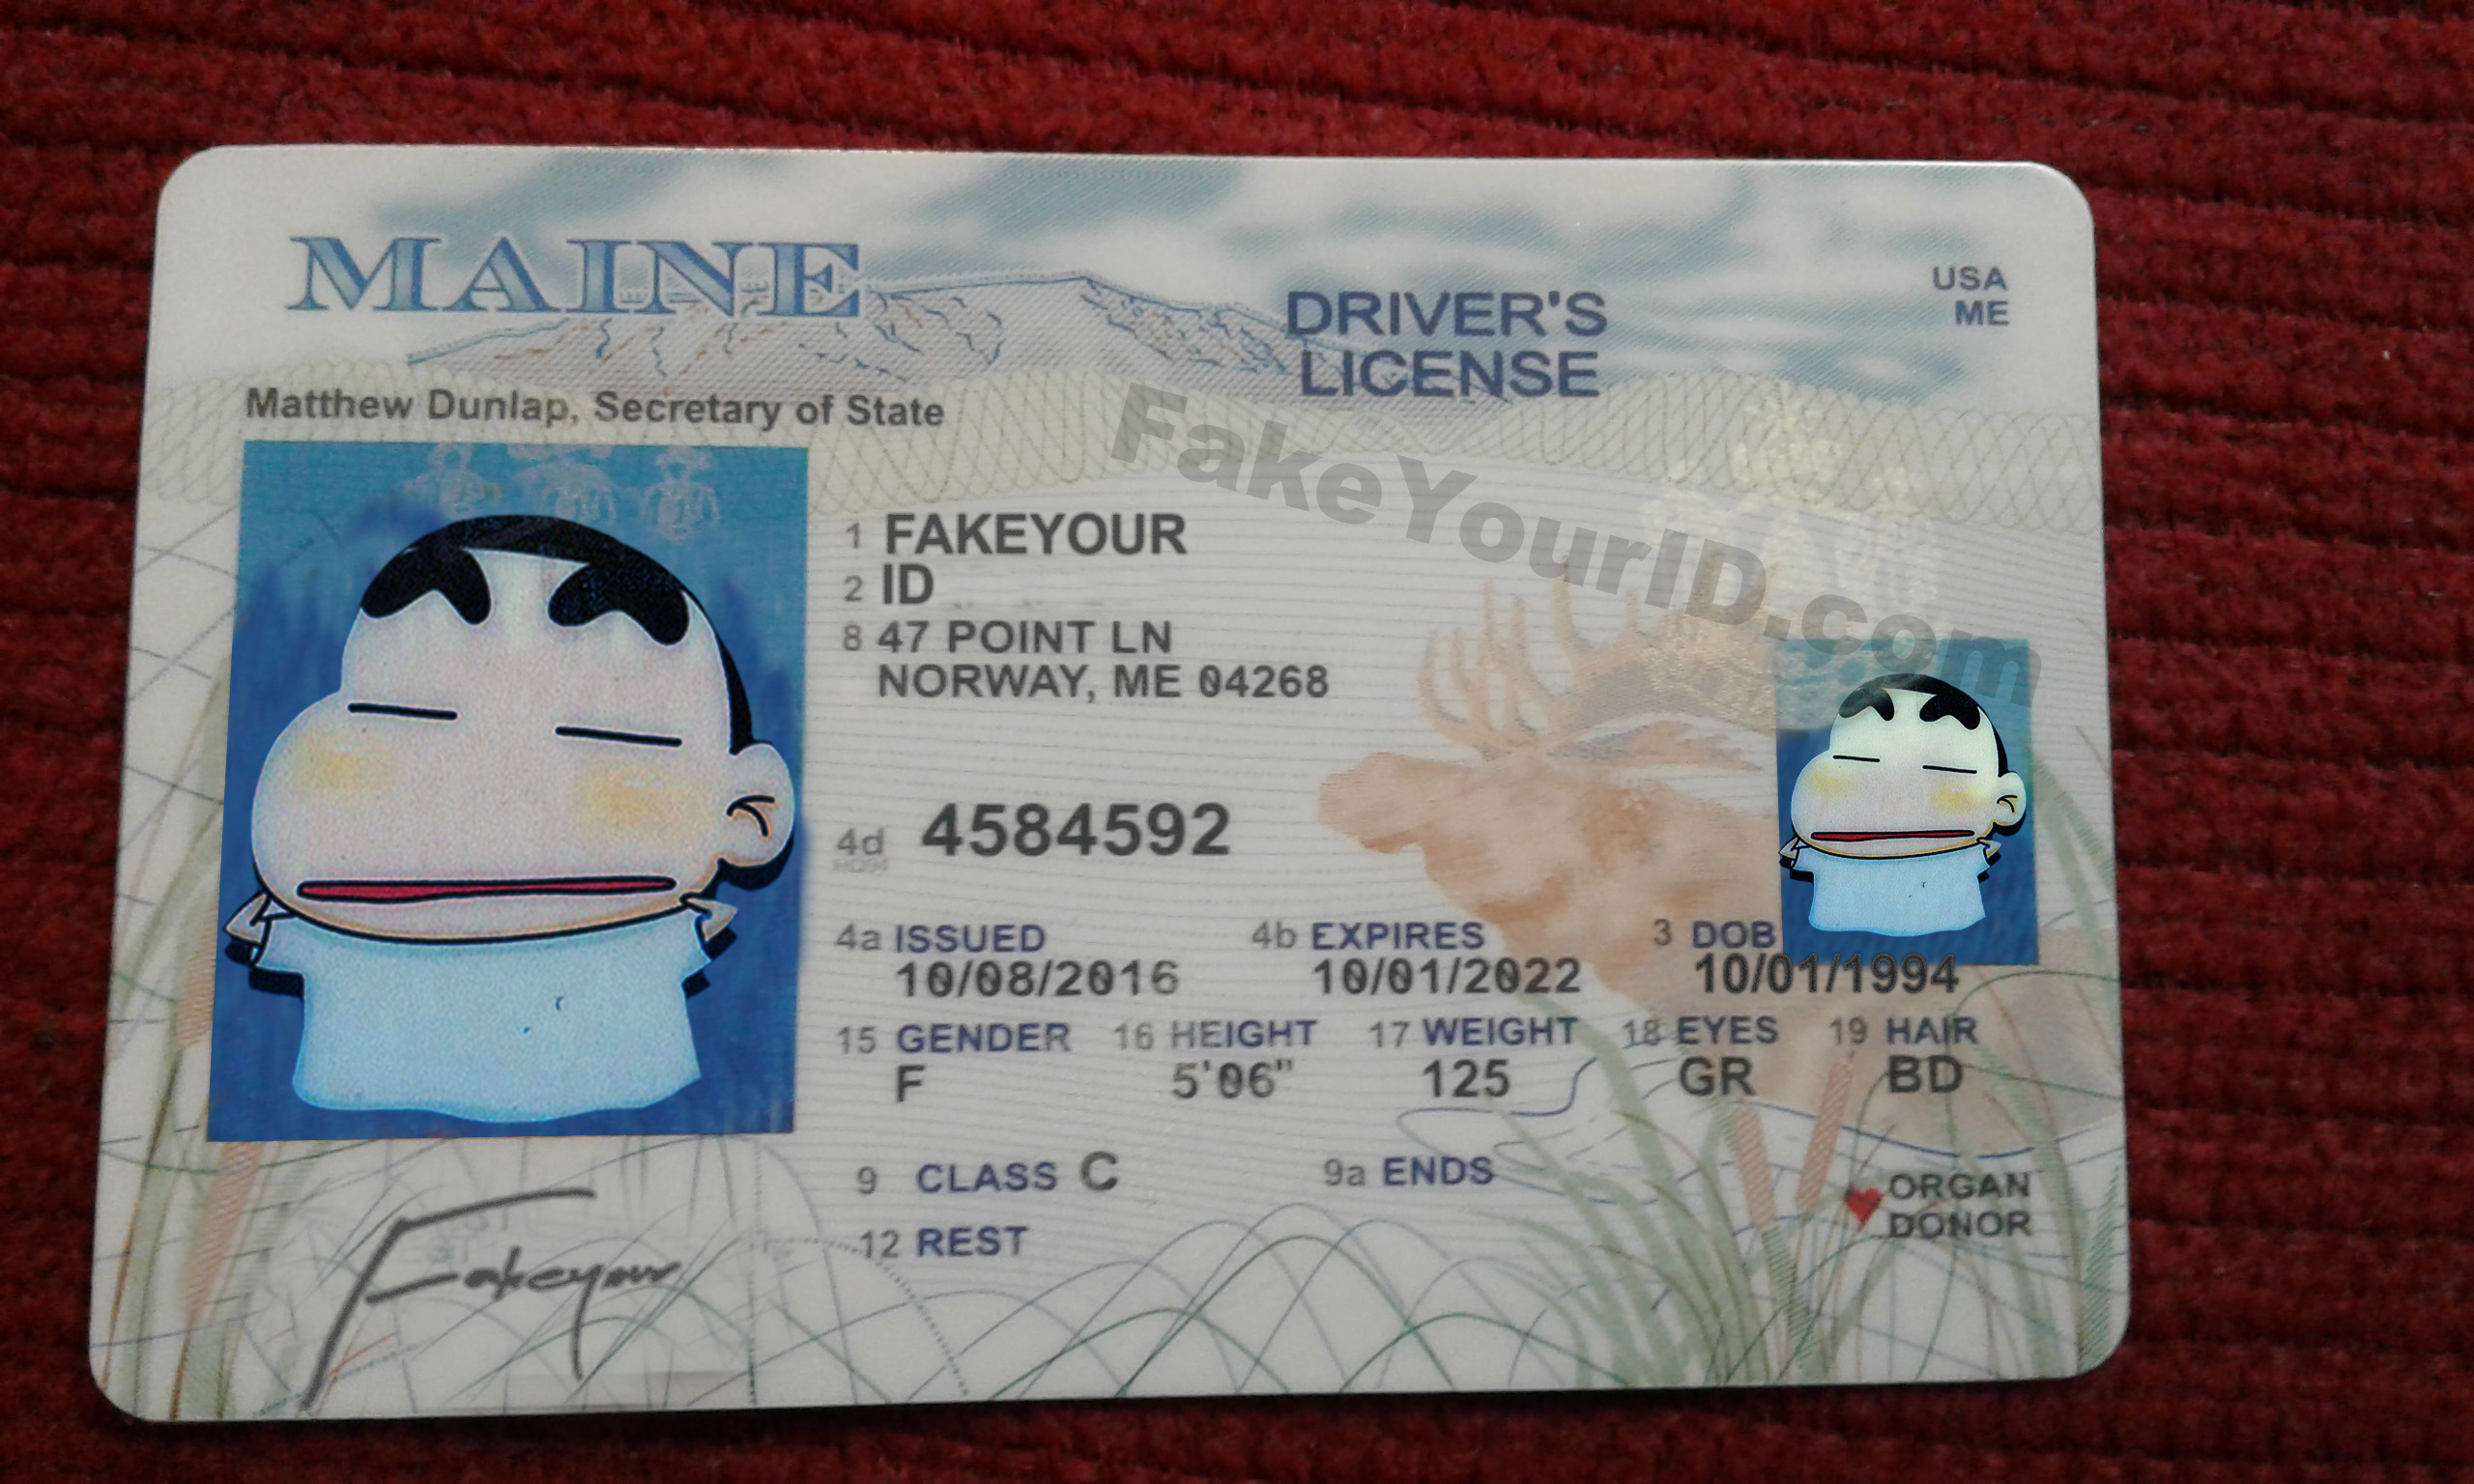 Scannable - Premium We Fake Make Id Buy Ids Maine